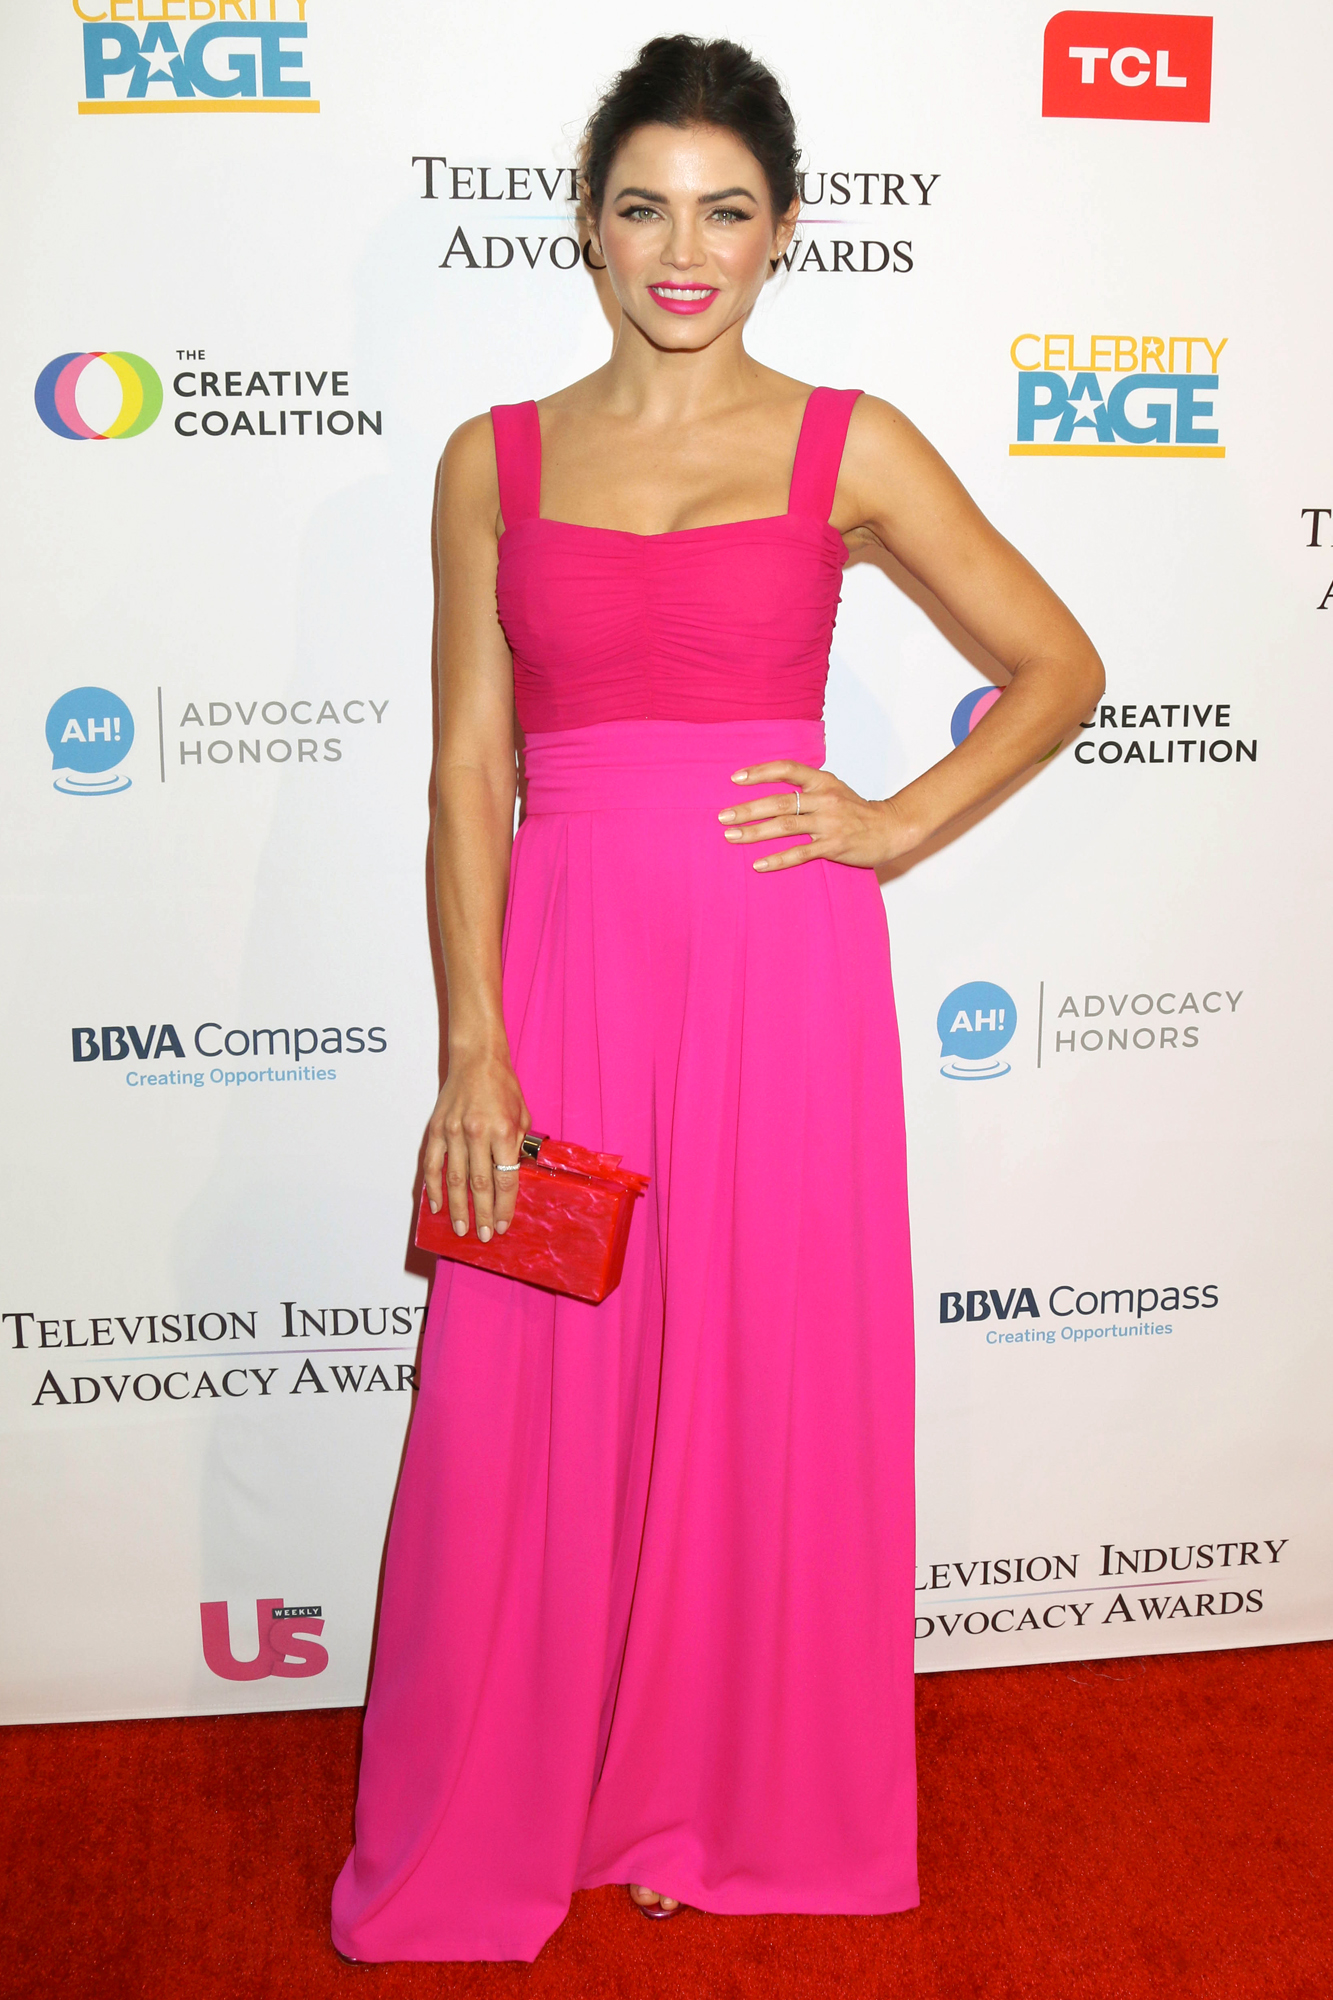 Television Industry Advocacy Awards, Los Angeles, USA - 15 Sep 2018